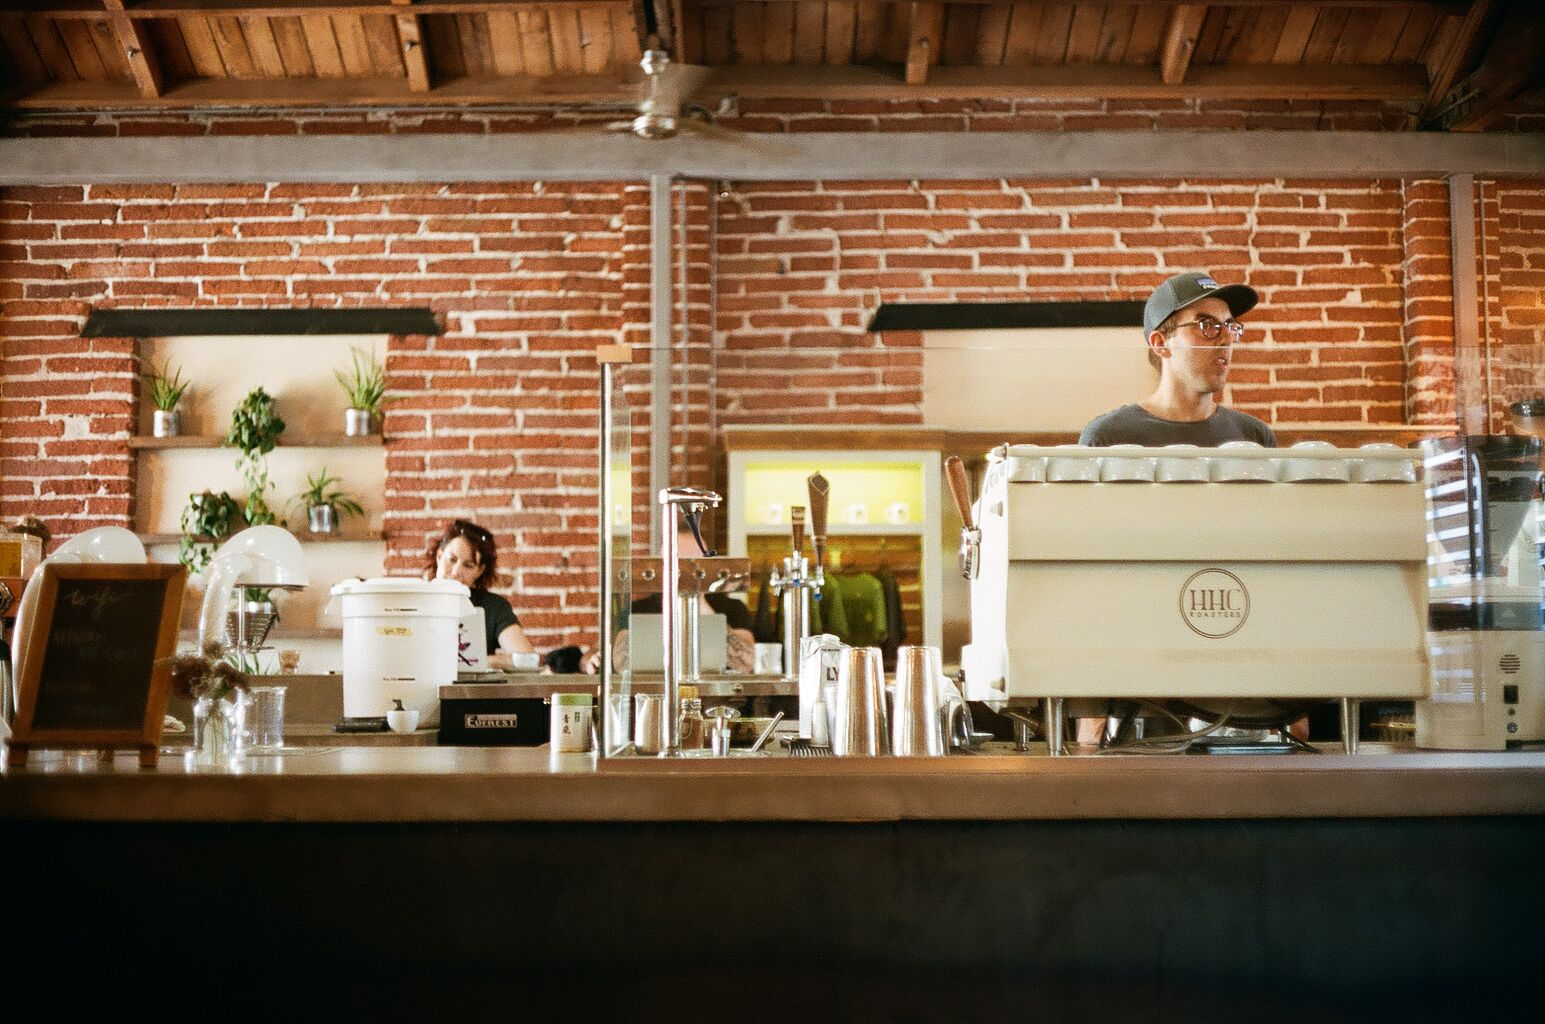 My First Roll of 35mm Film (Canonet QL17 Giii on Kodak Portra 400) | SarahMichiko.com